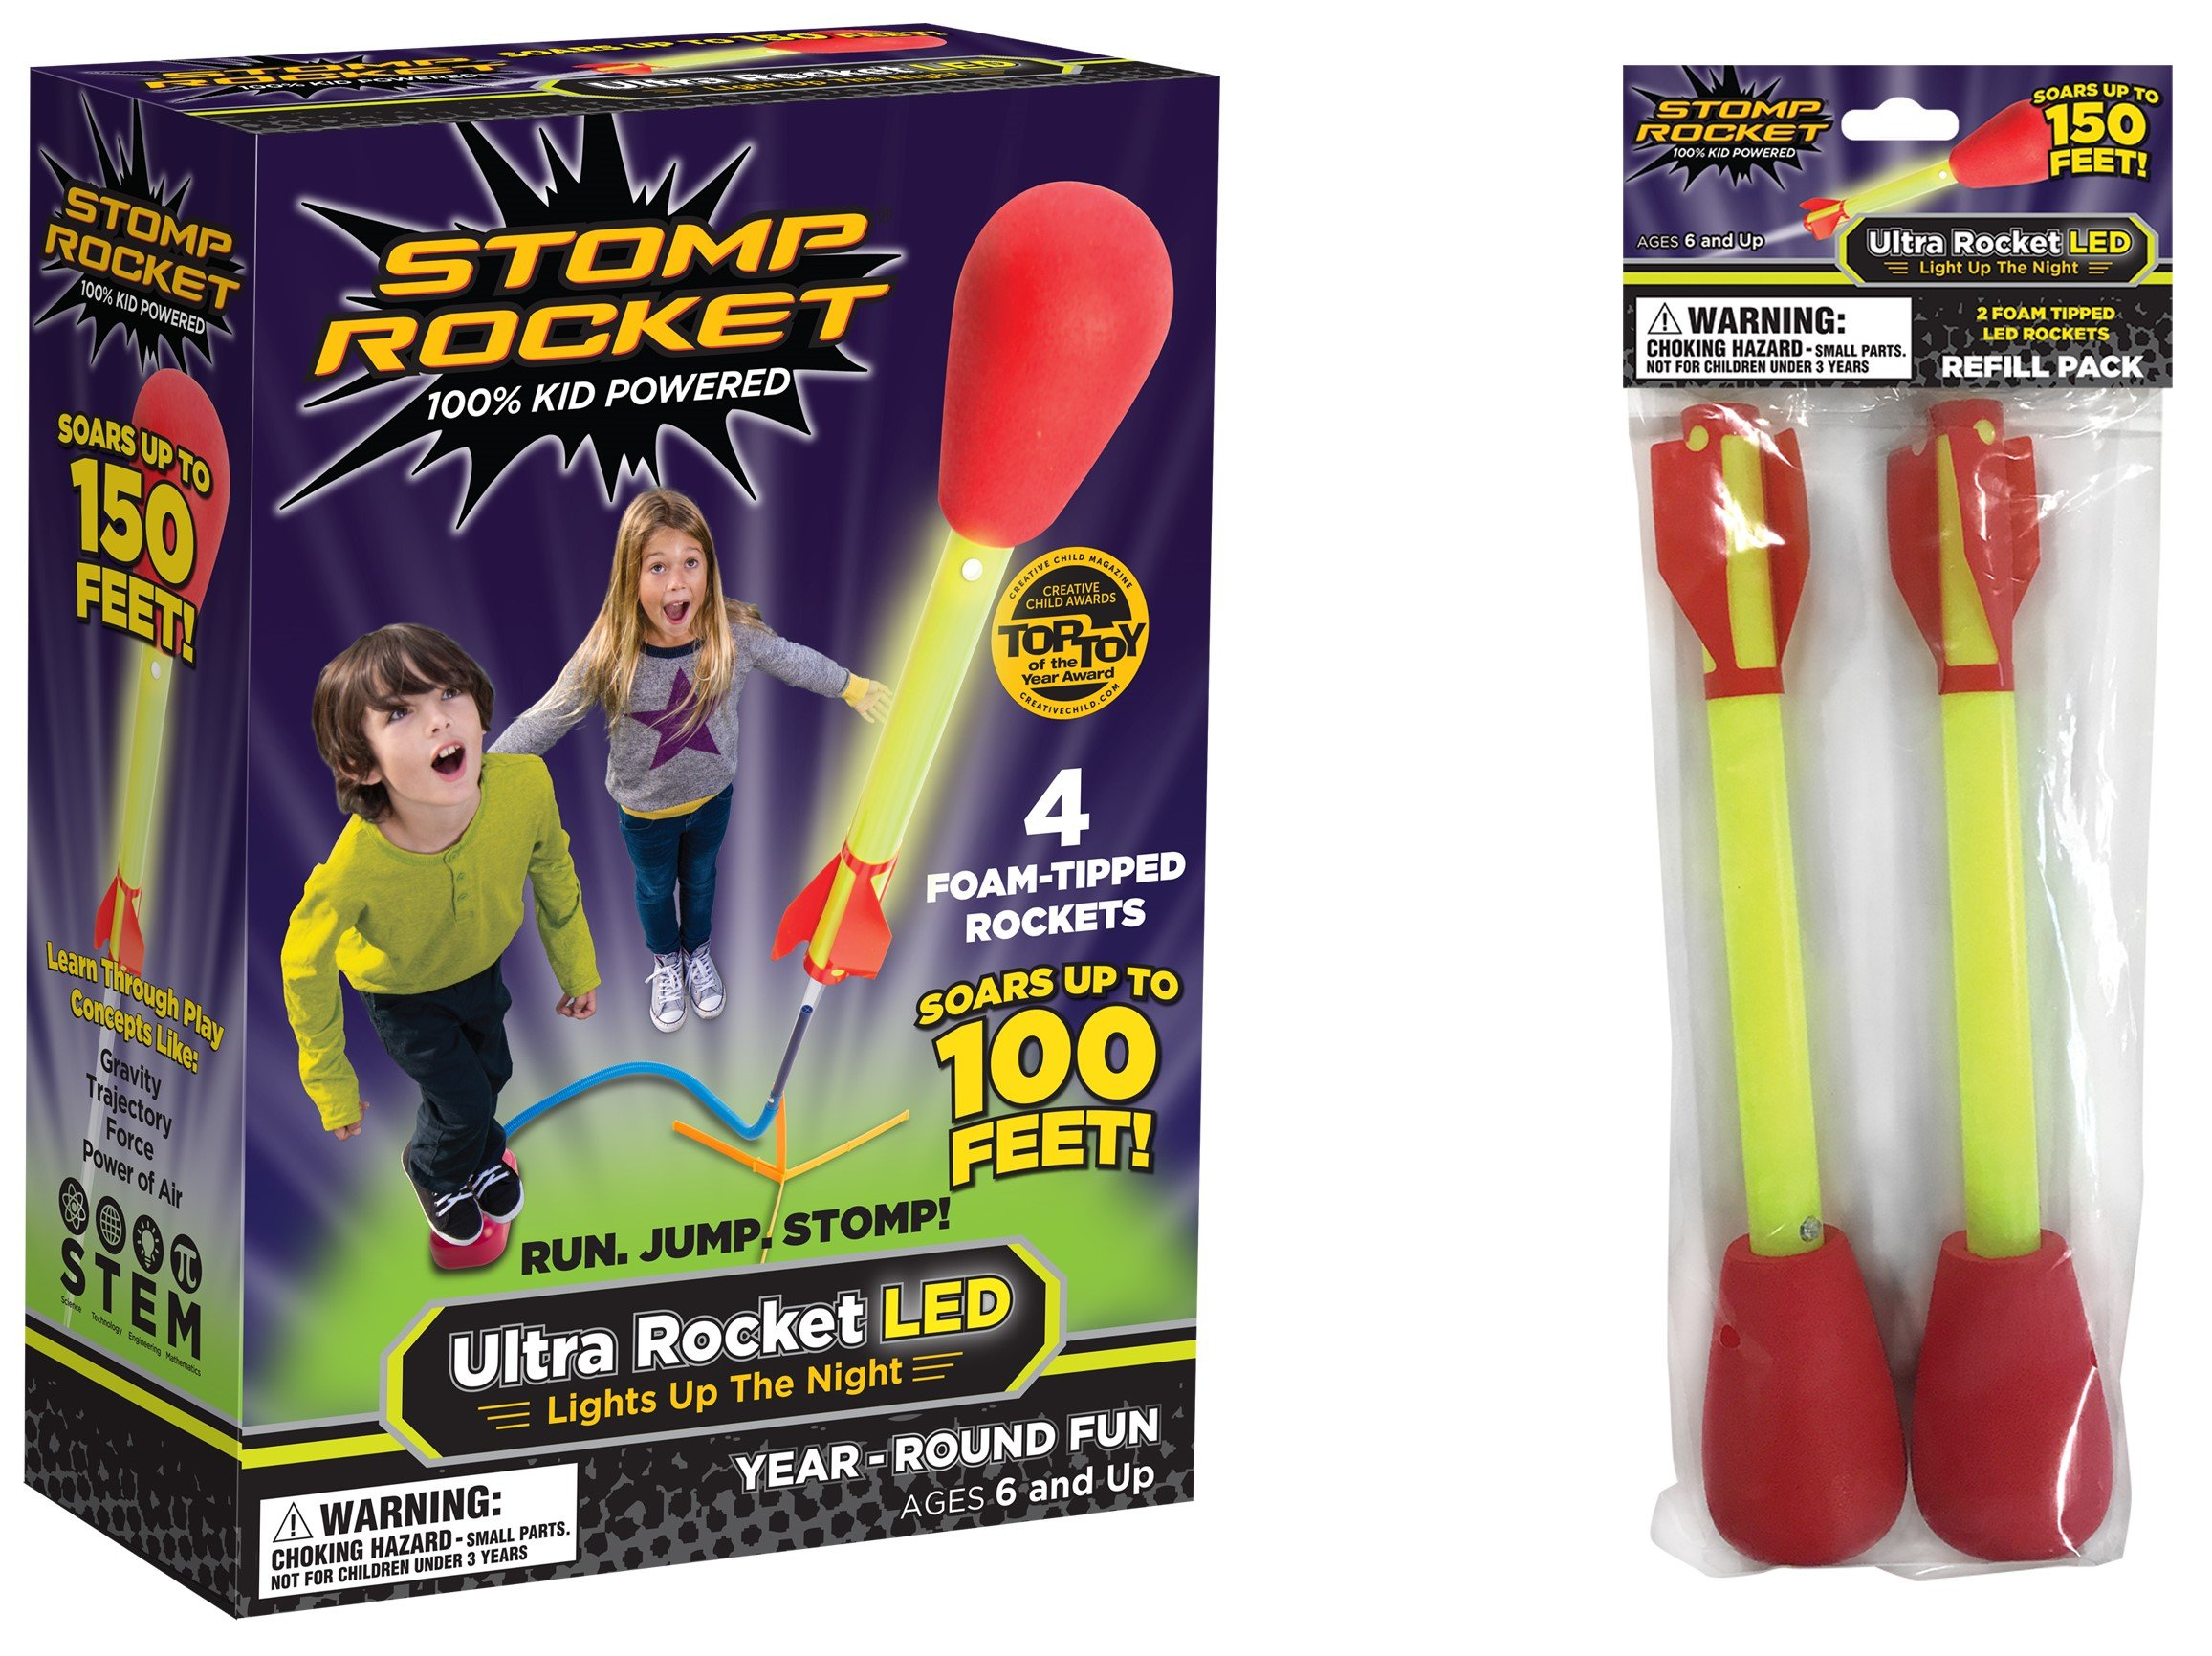 Stomp Rocket Ultra Rocket LED with Ultra Rocket LED Refill Pack, 6 Rockets - Outdoor Rocket Toy for Boys and Girls - Comes with Toy Rocket Launcher - Ages 6 Years Old and Up